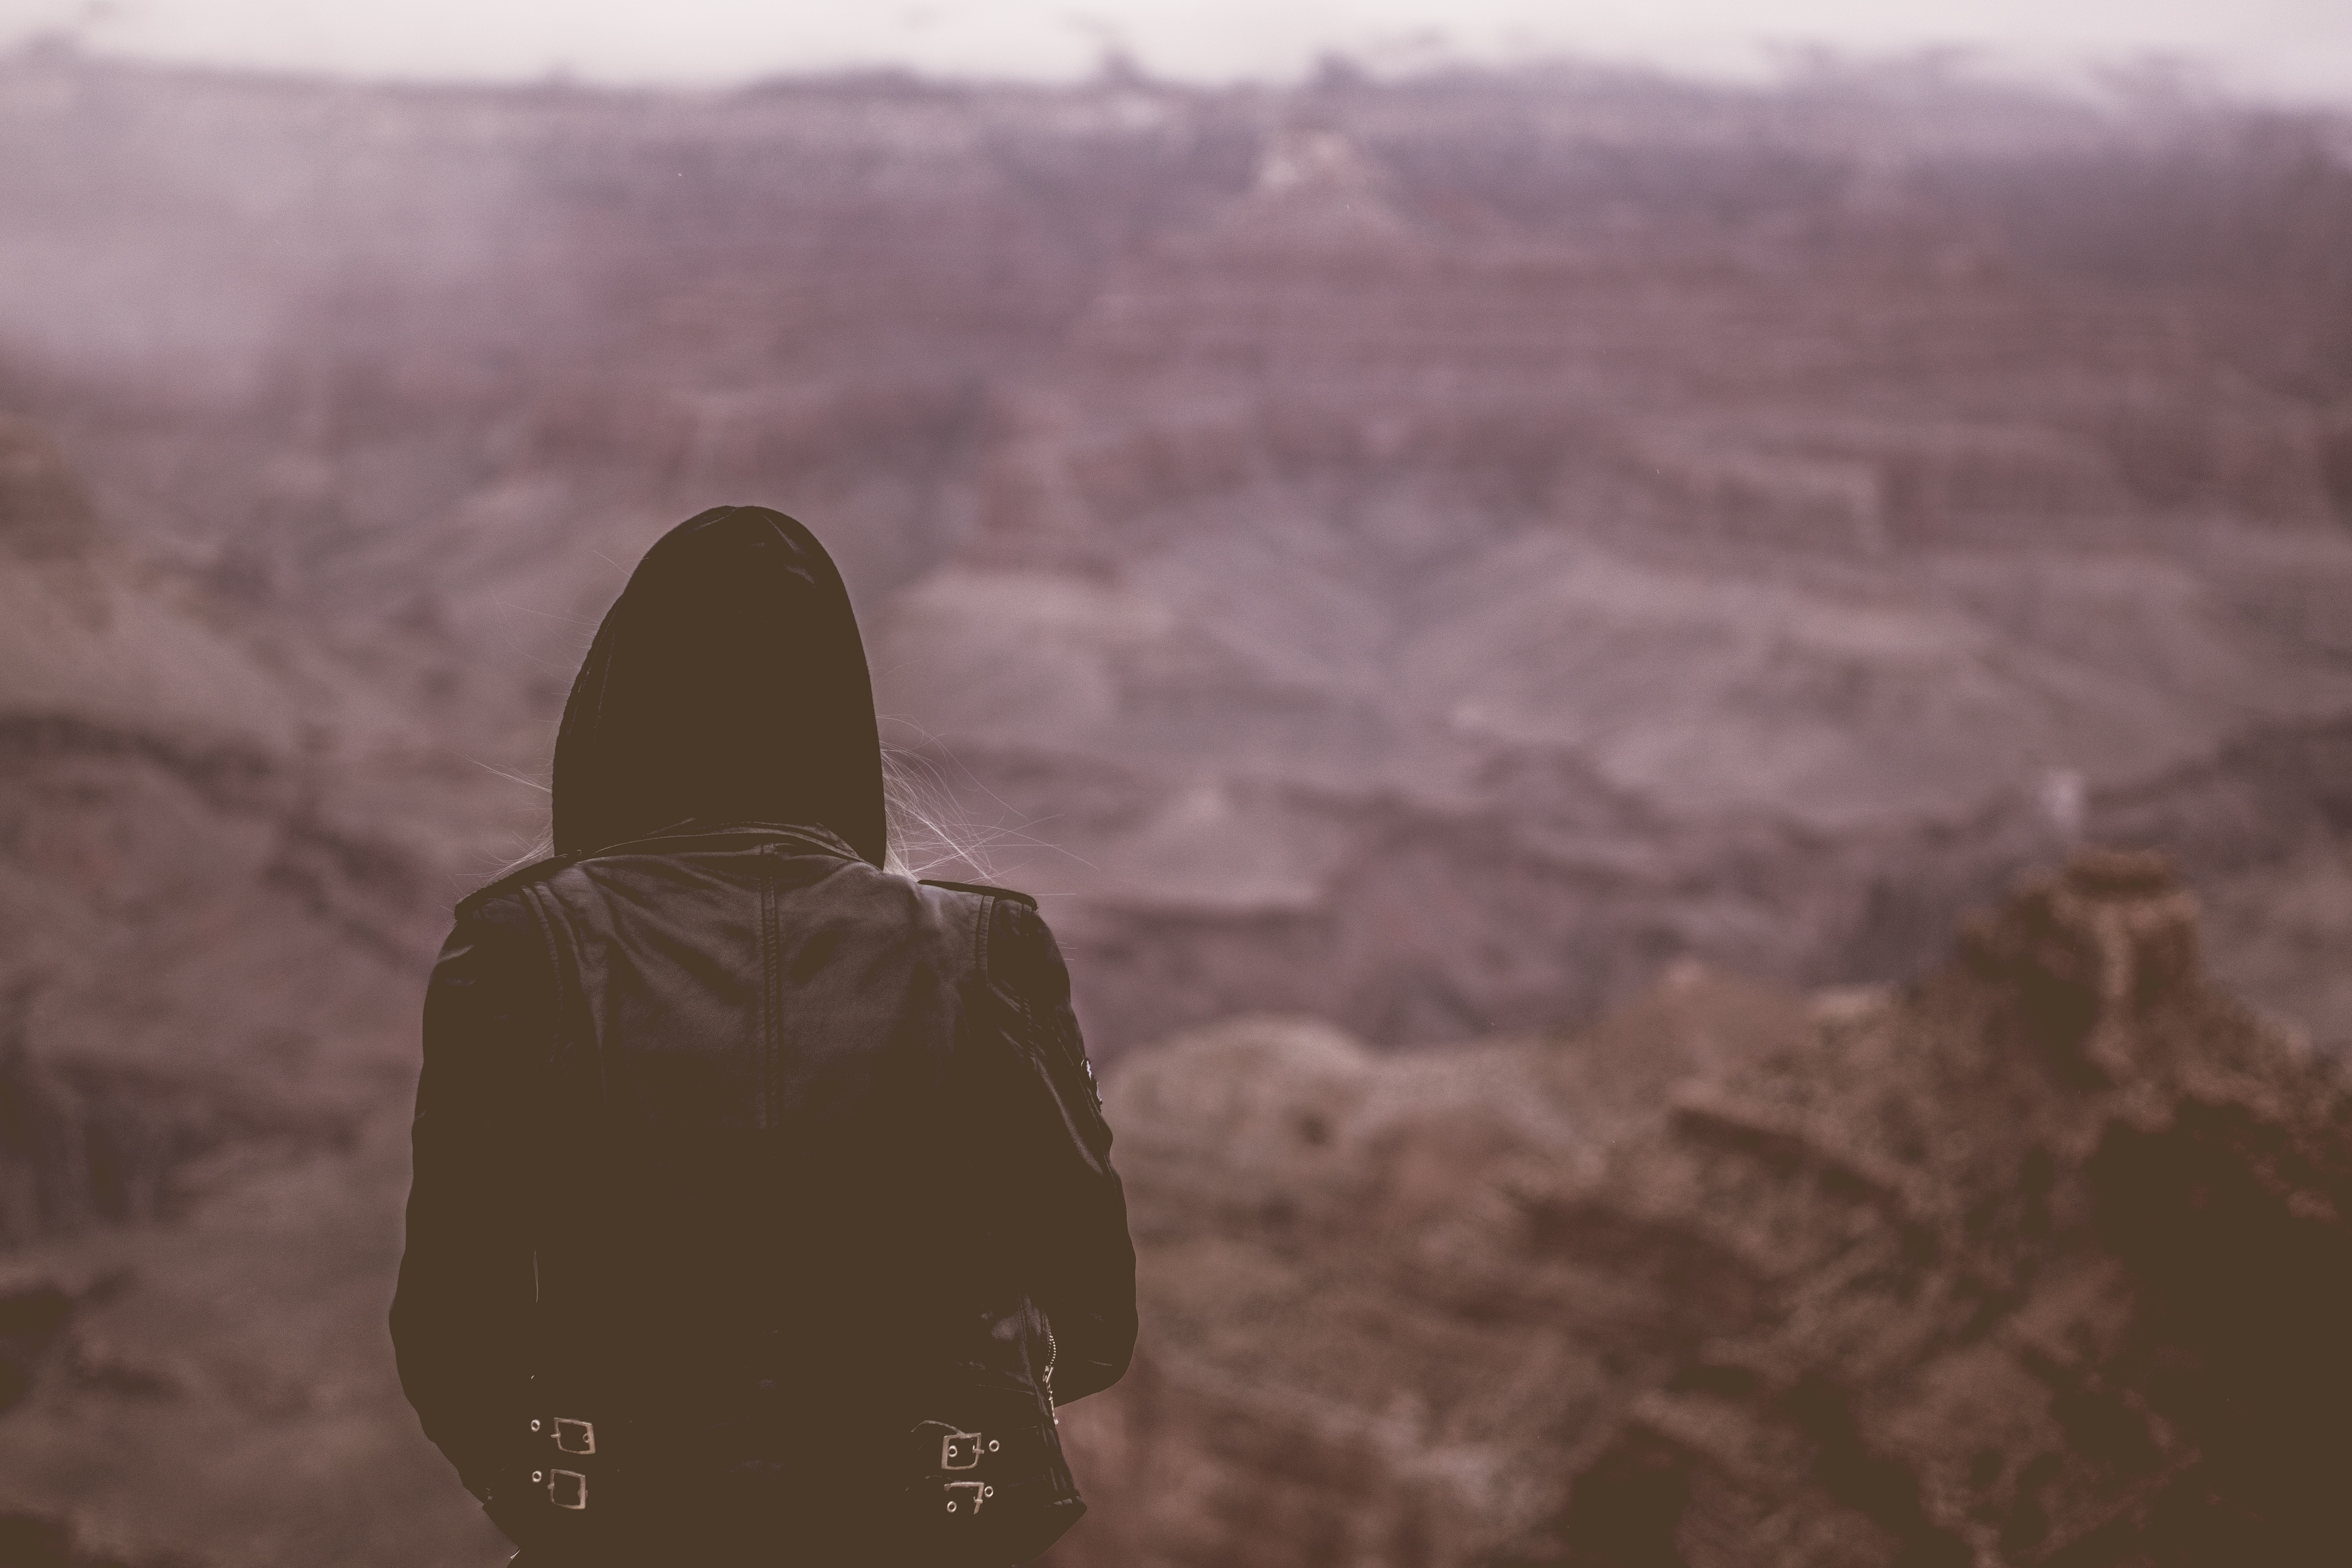 A girl in a hooded leather jacket staring into a canyon